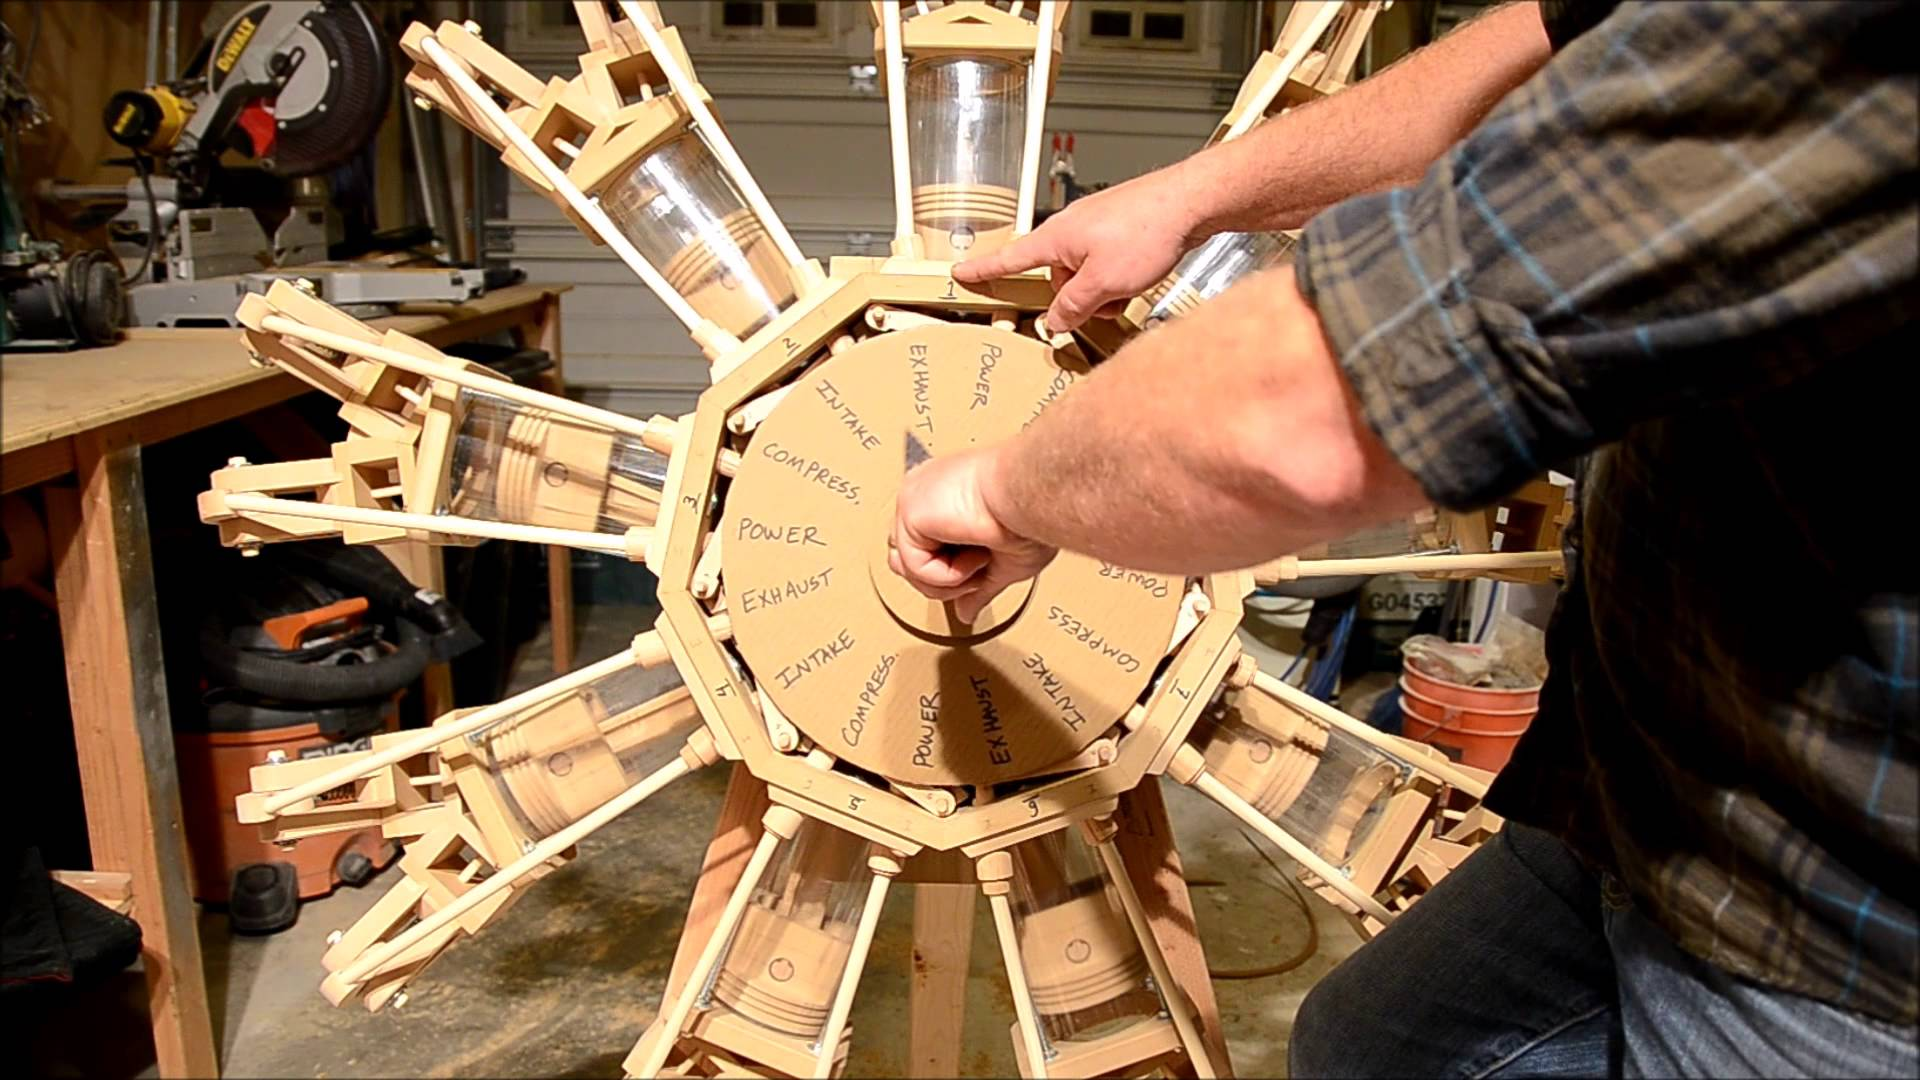 This Guy Built A Wooden Radial Engine And Explains How It Works